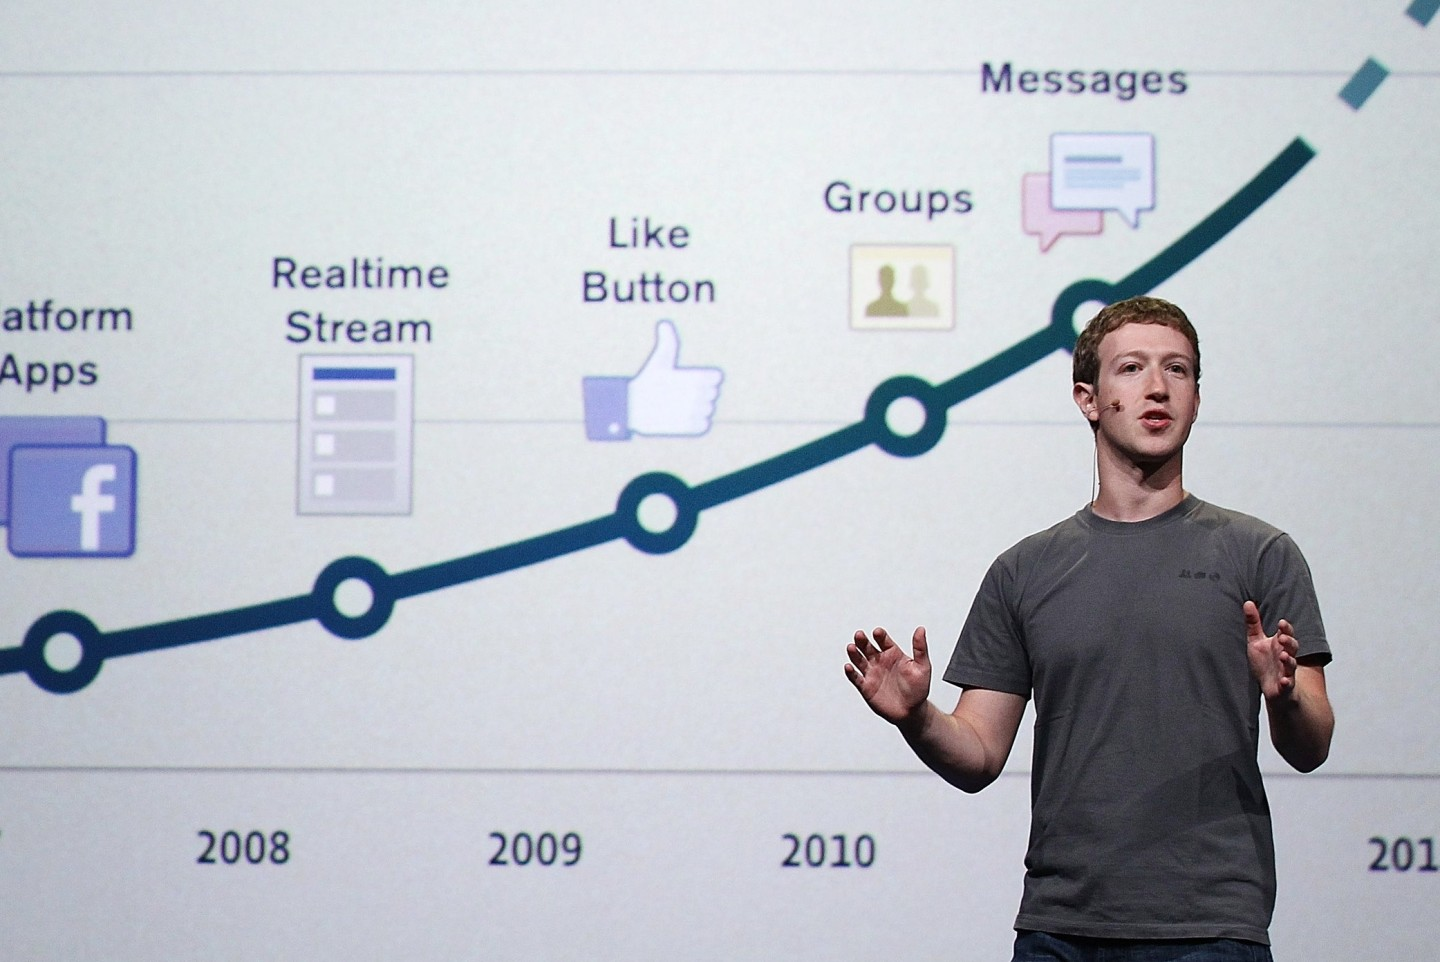 How Does Facebook Turn Our Info into Cash?